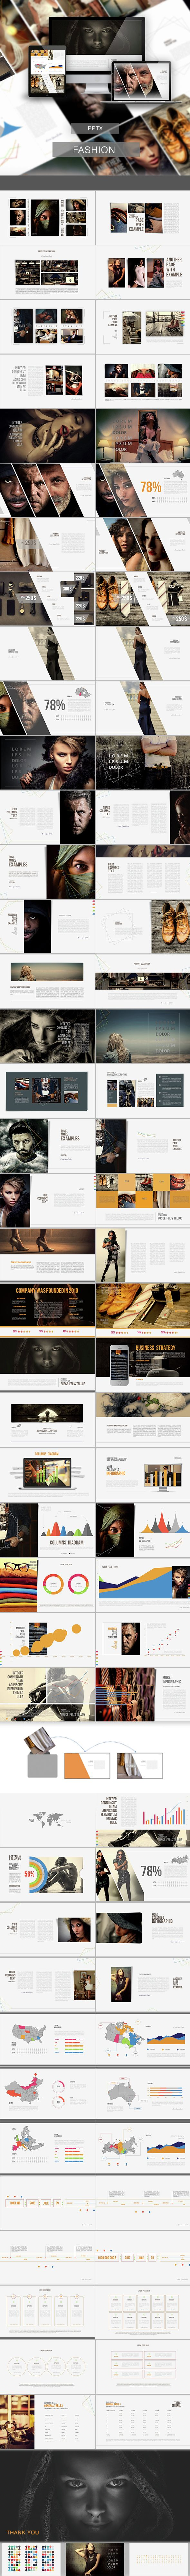 Fashion PowerPoint Presentation  #interactive #modern • Download ➝ https://graphicriver.net/item/fashion-powerpoint-presentation/15143139?ref=pxcr